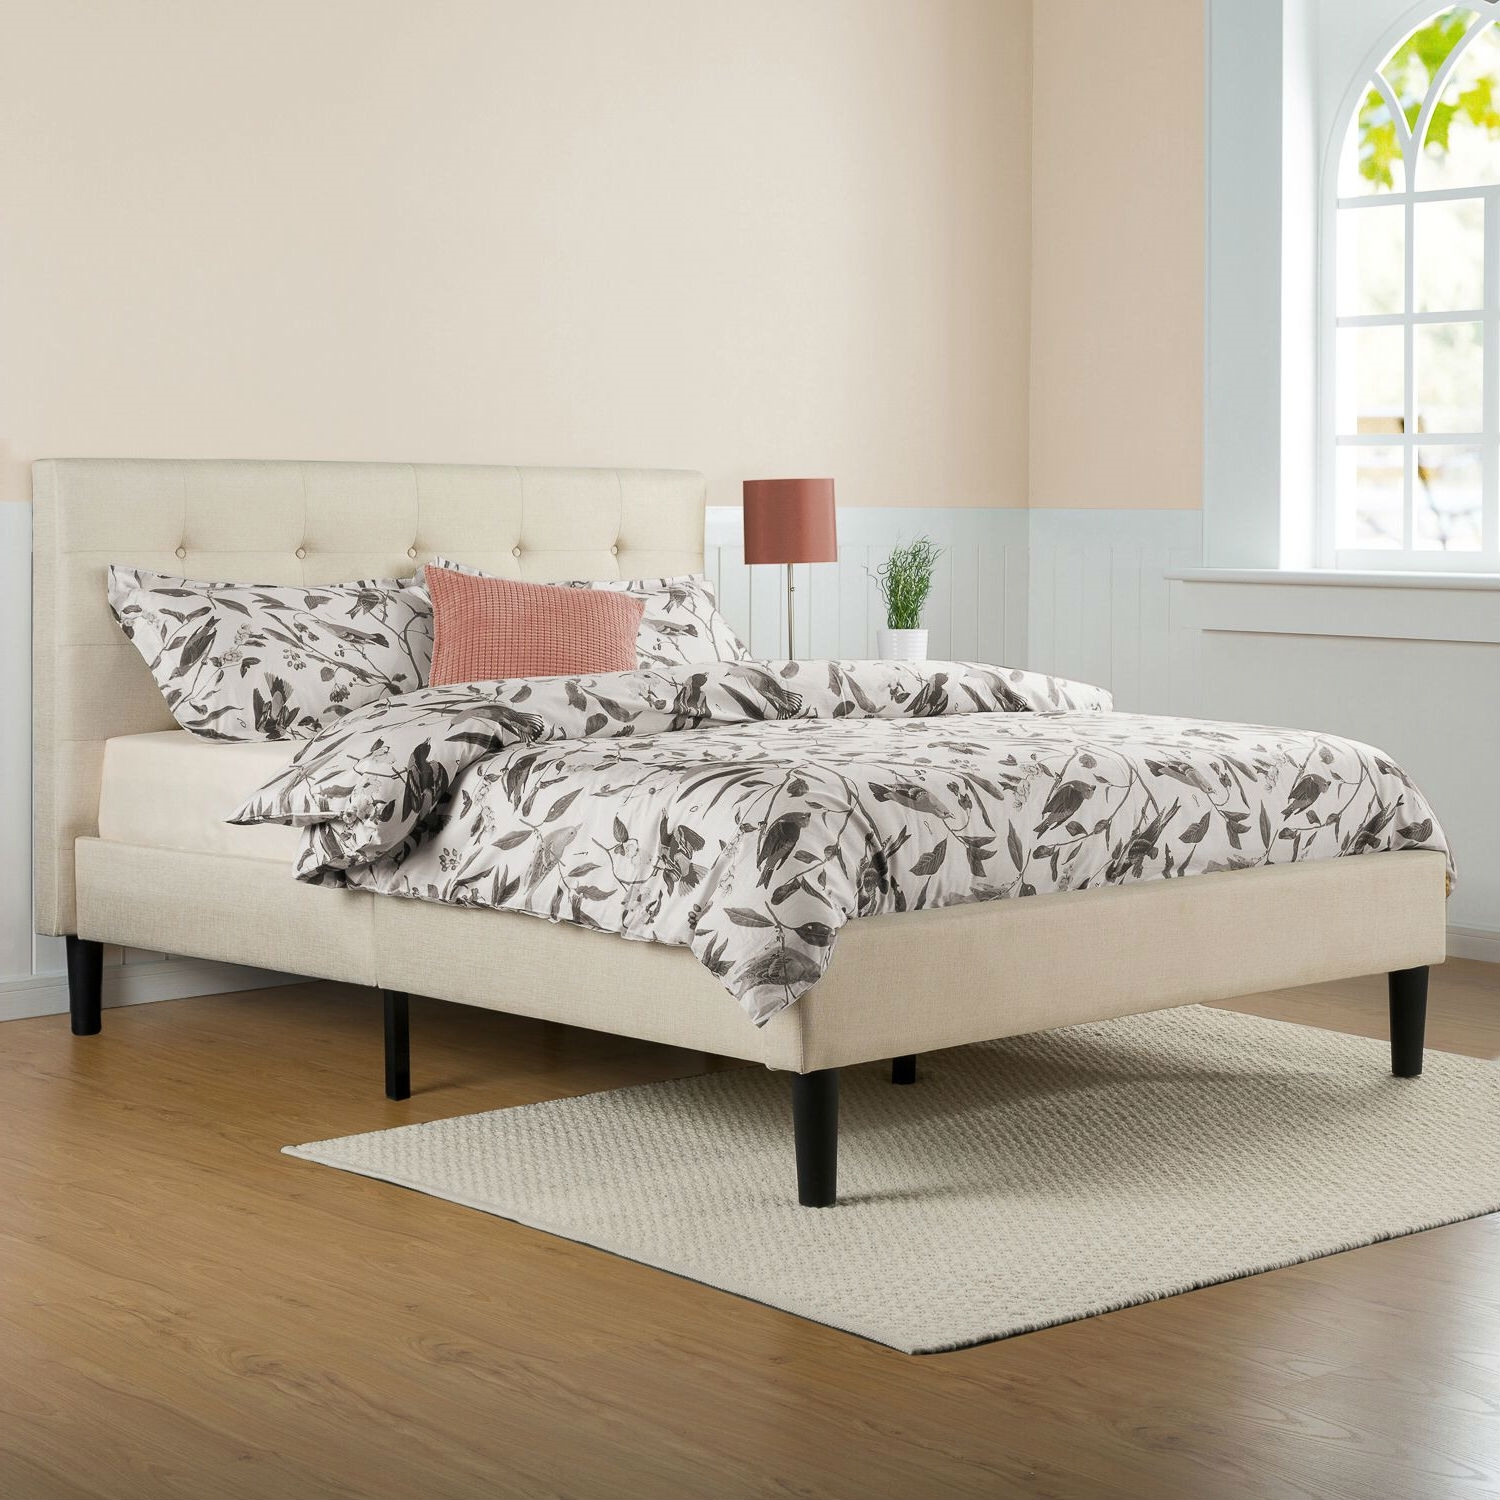 full size platform bed frame with headboard full size taupe beige upholstered platform bed frame with headboard LYVTEYE